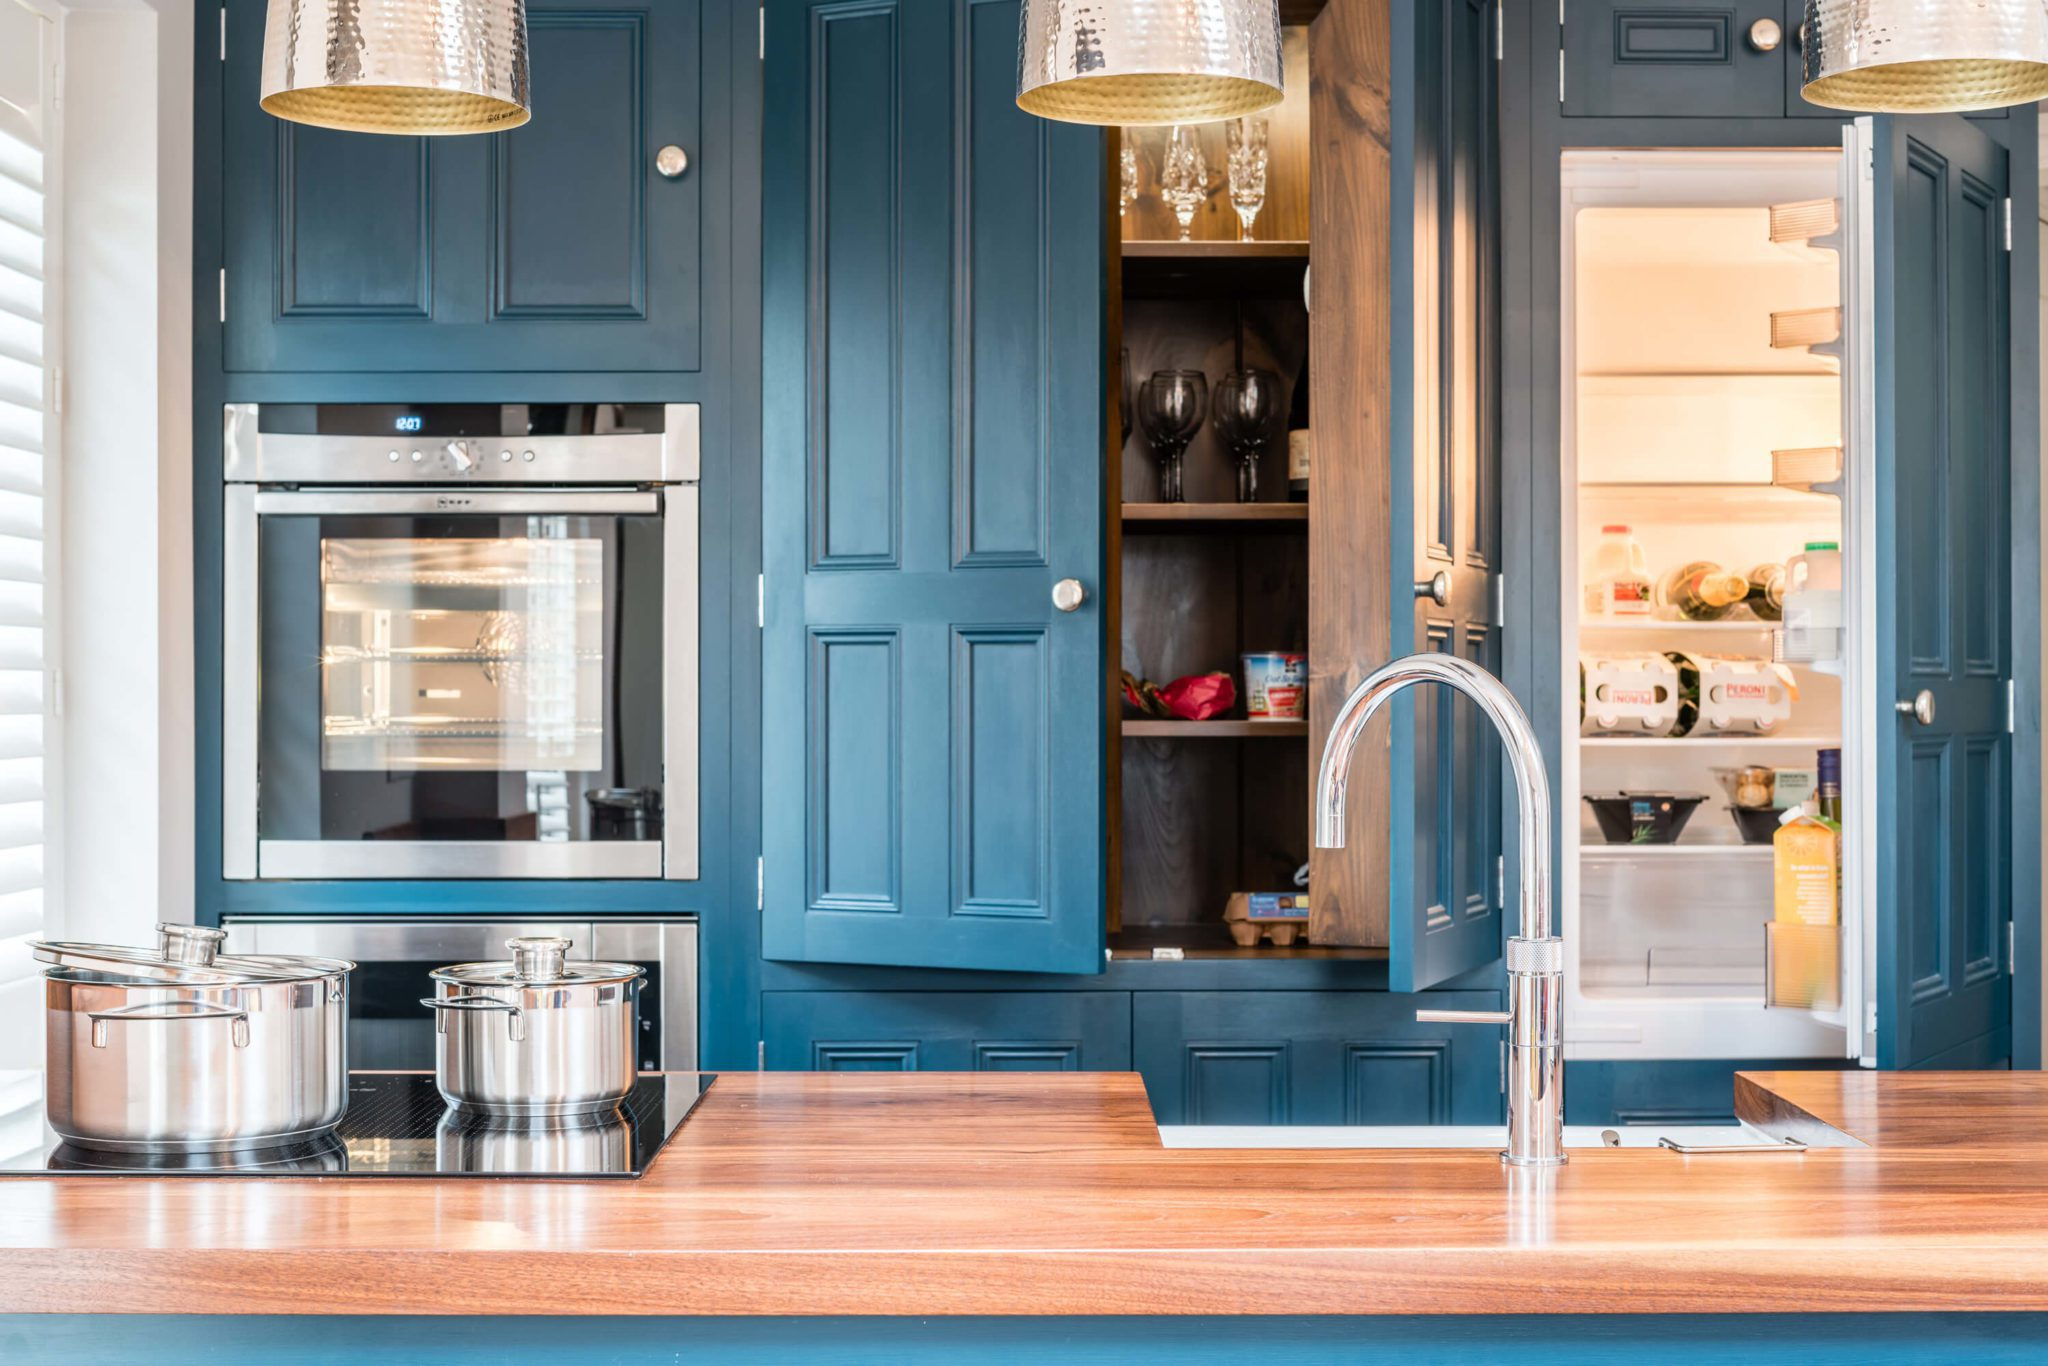 Kitchen Cabinet Blue - Hill Farm Furniture